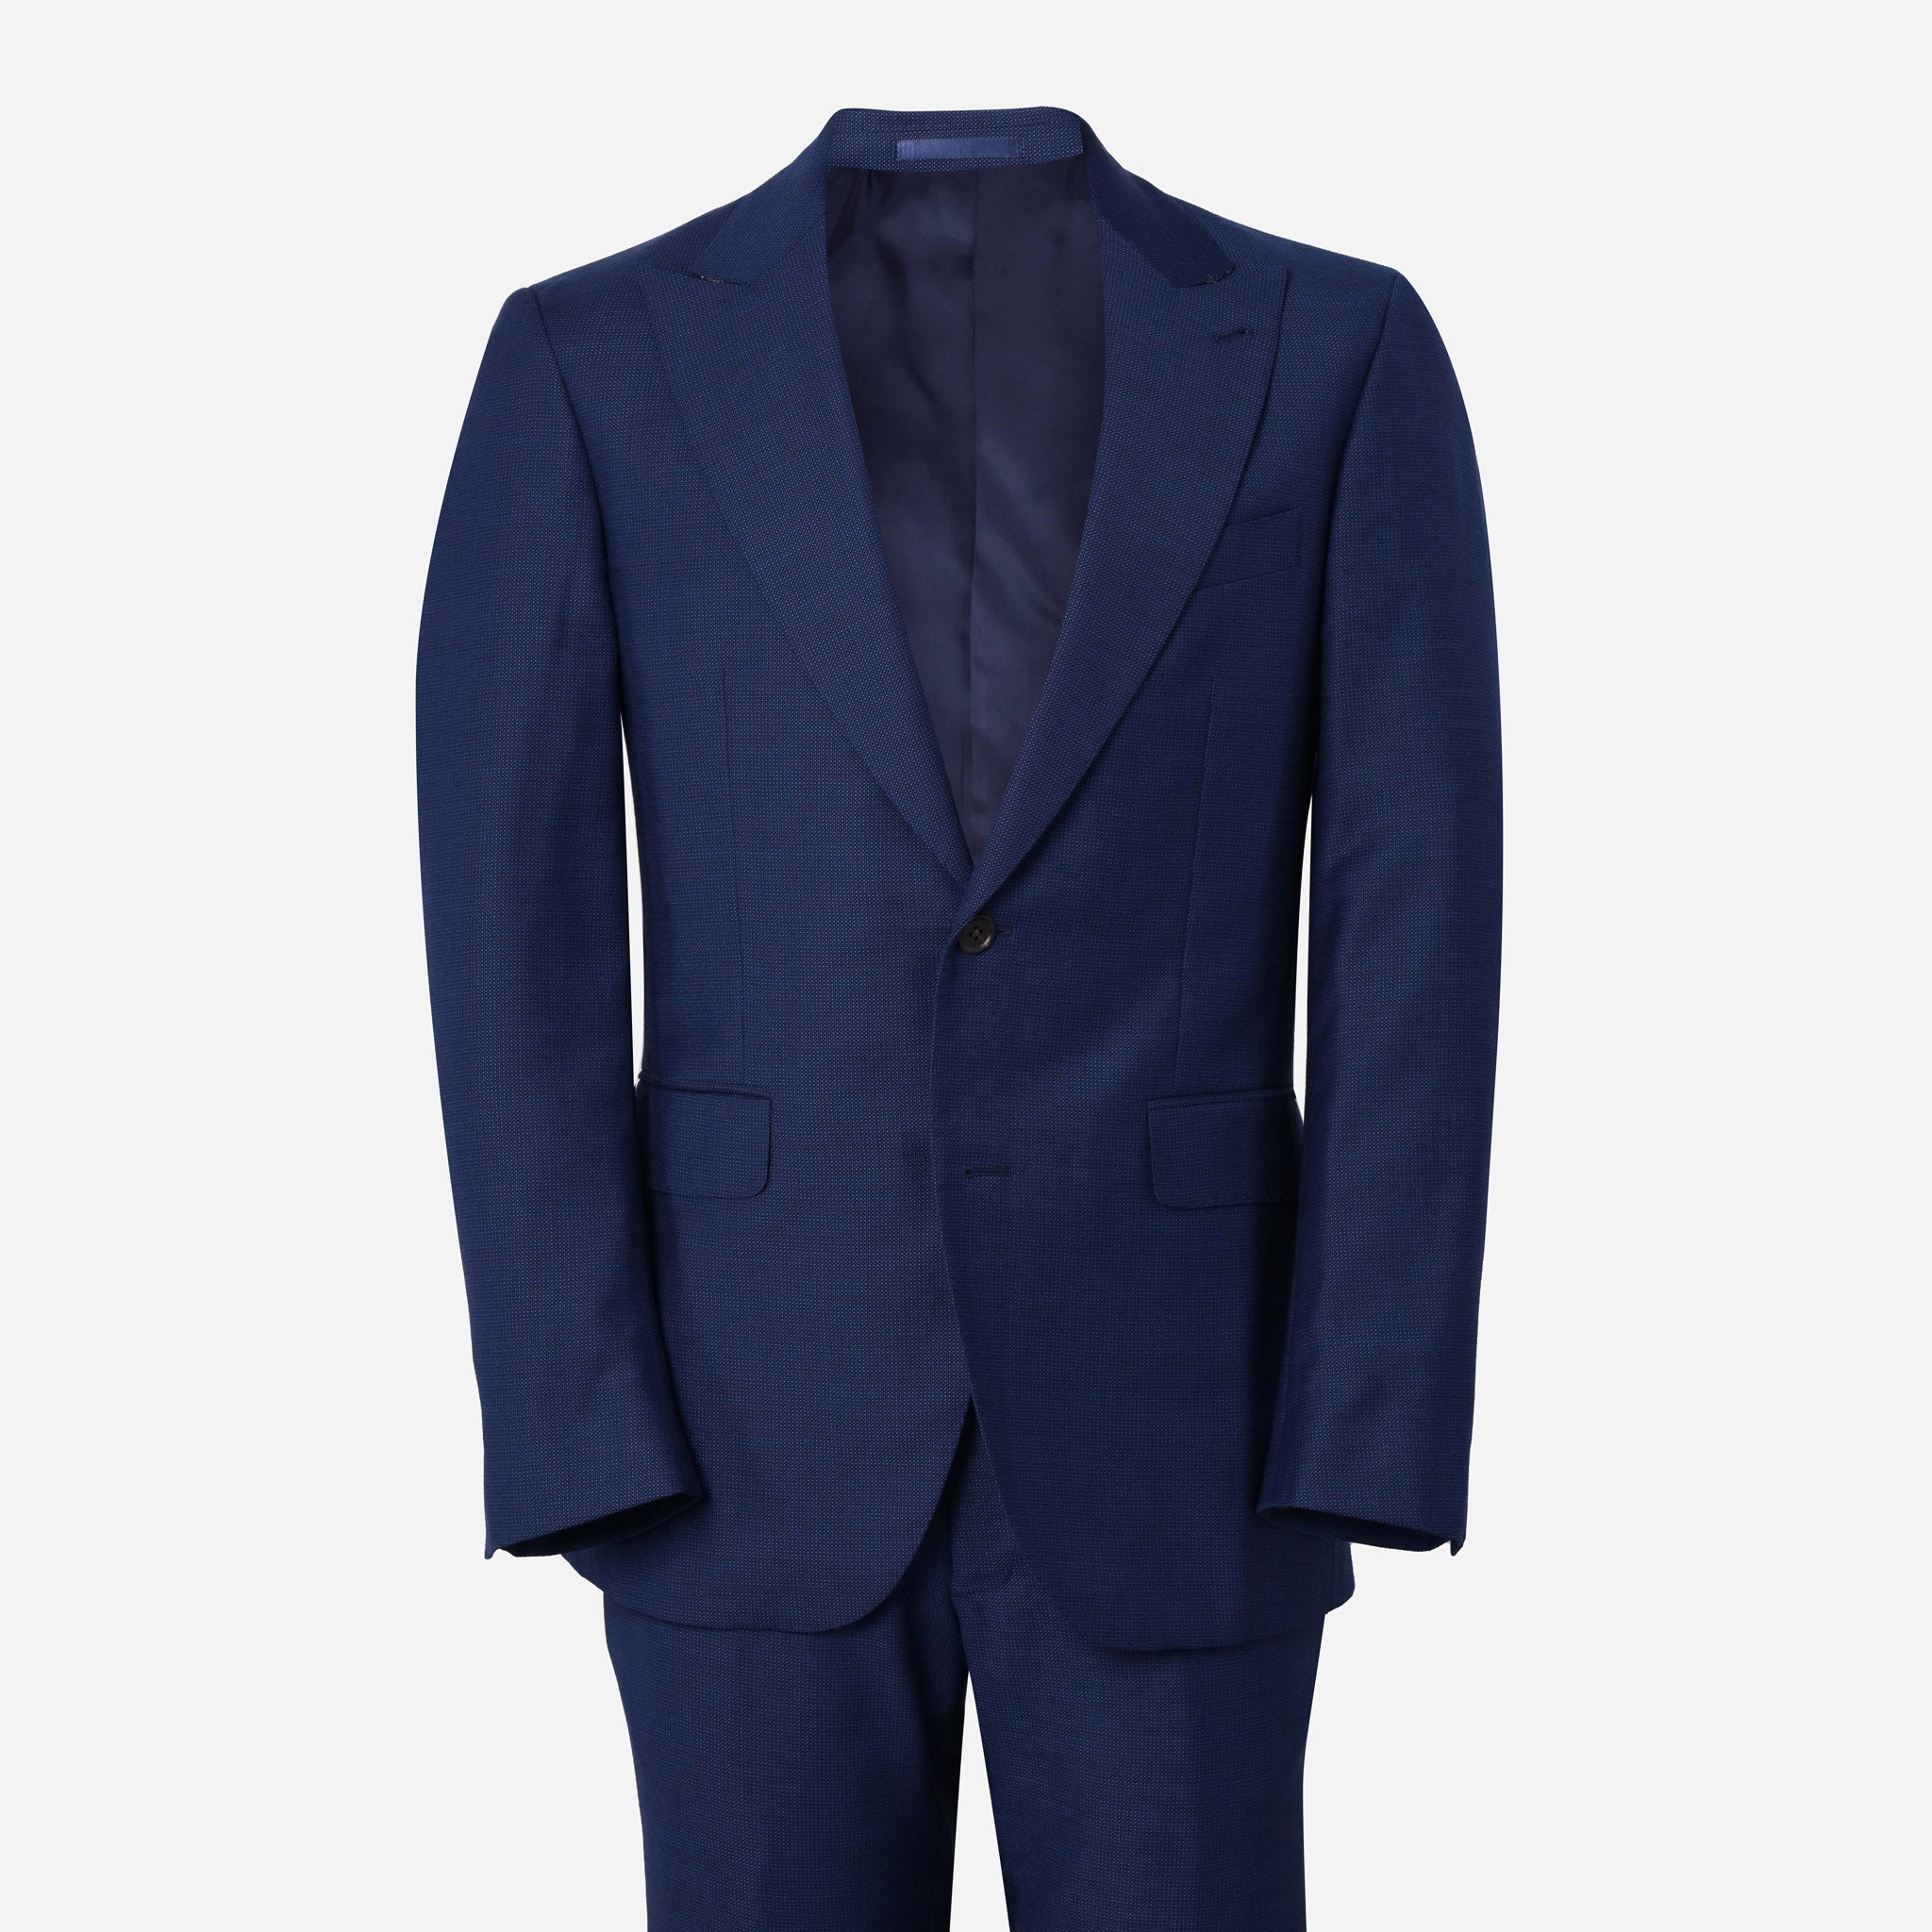 Scabal Image in Medium Blue